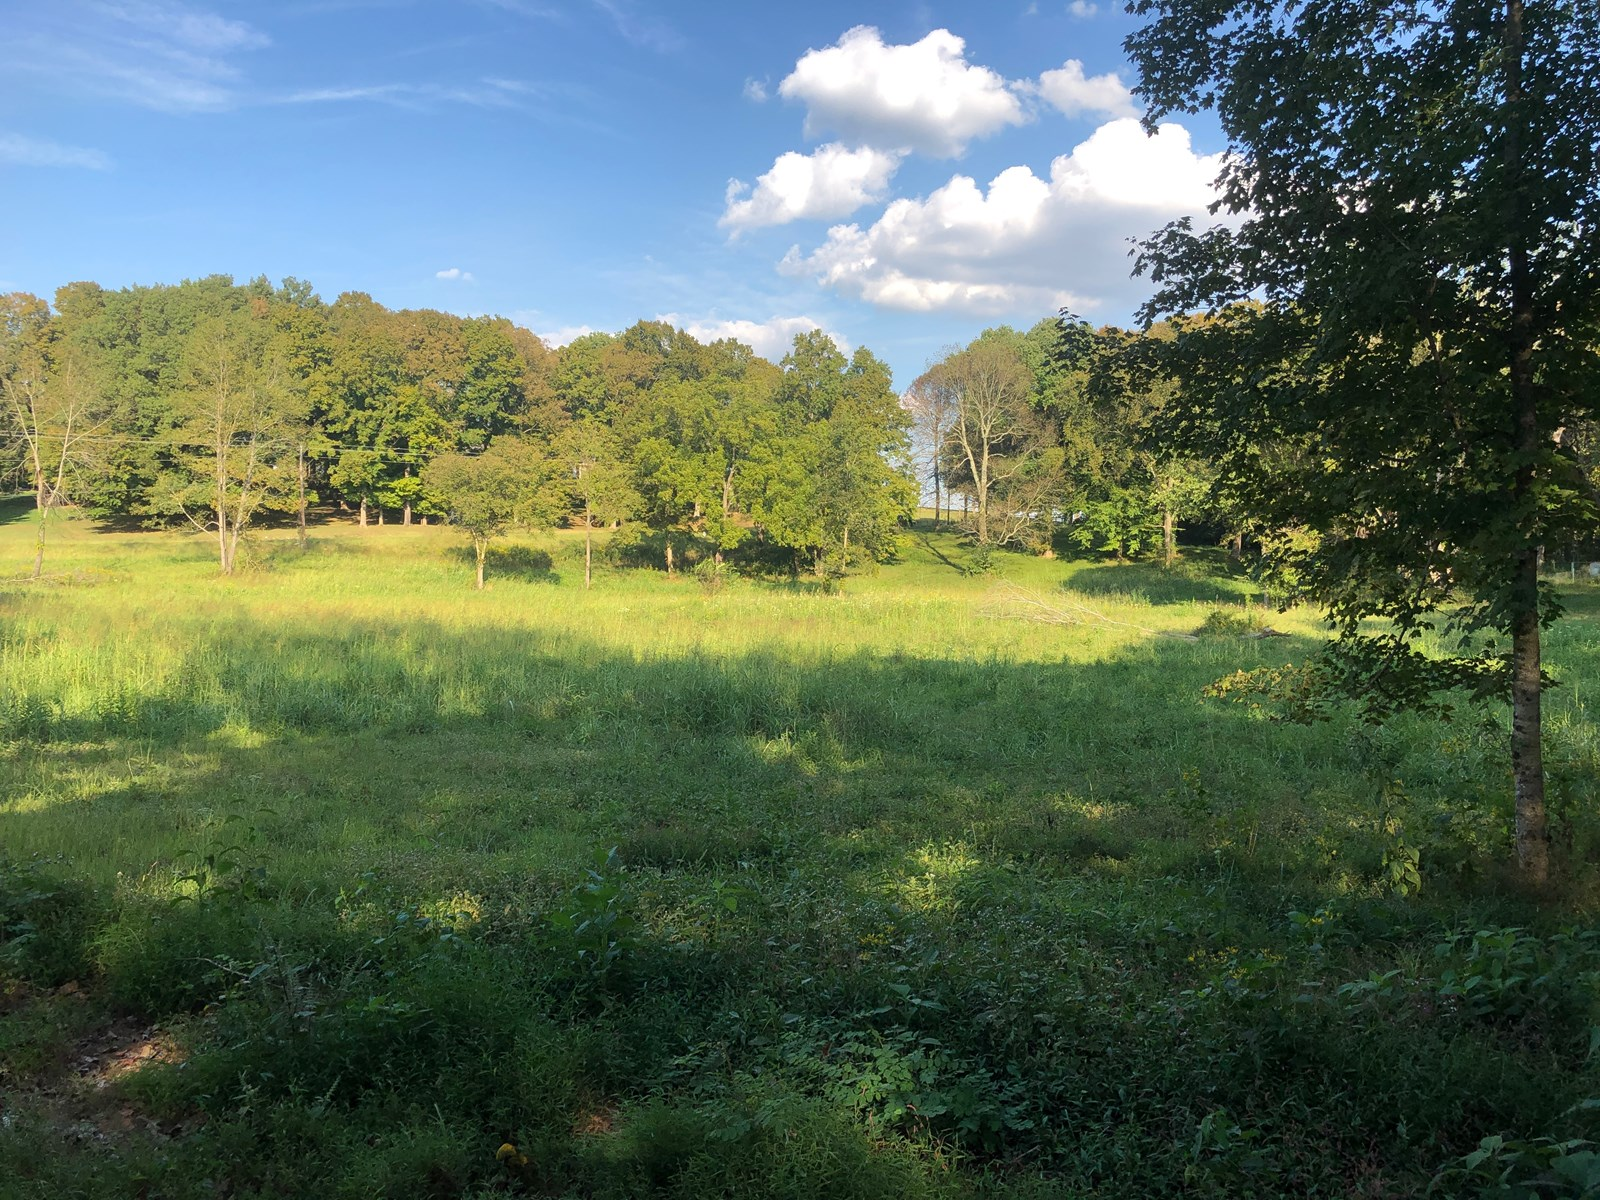 NICE 5 ACRE LOT - READY TO BUILD YOUR COUNTRY HOME?